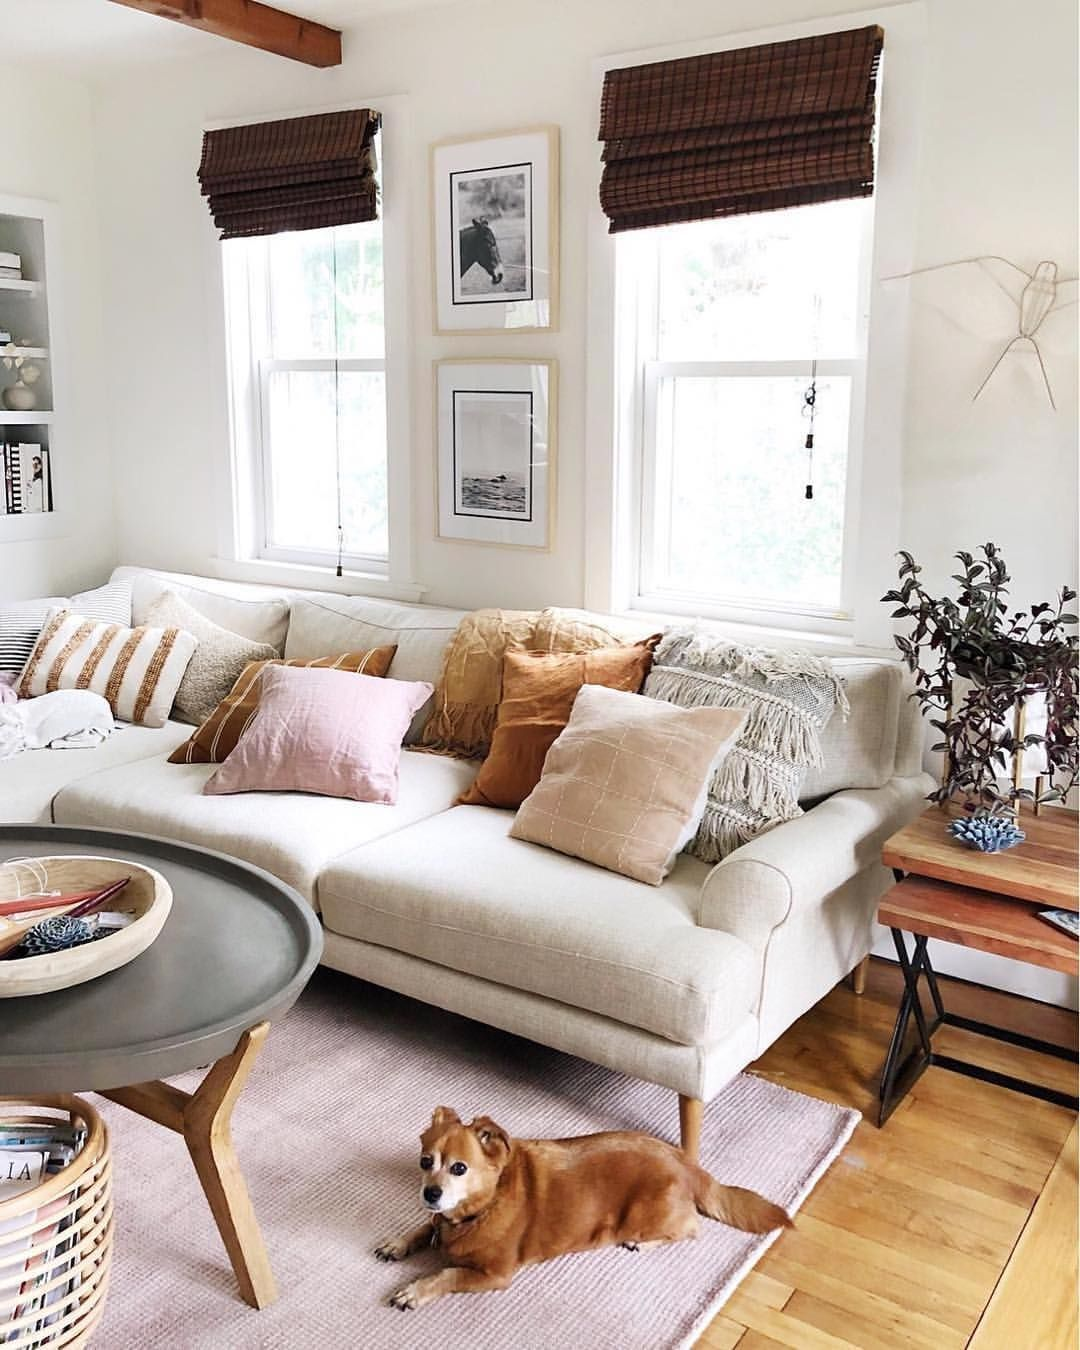 Small Eclectic Living Rooms: 6 Amazing Small Living Room Ideas